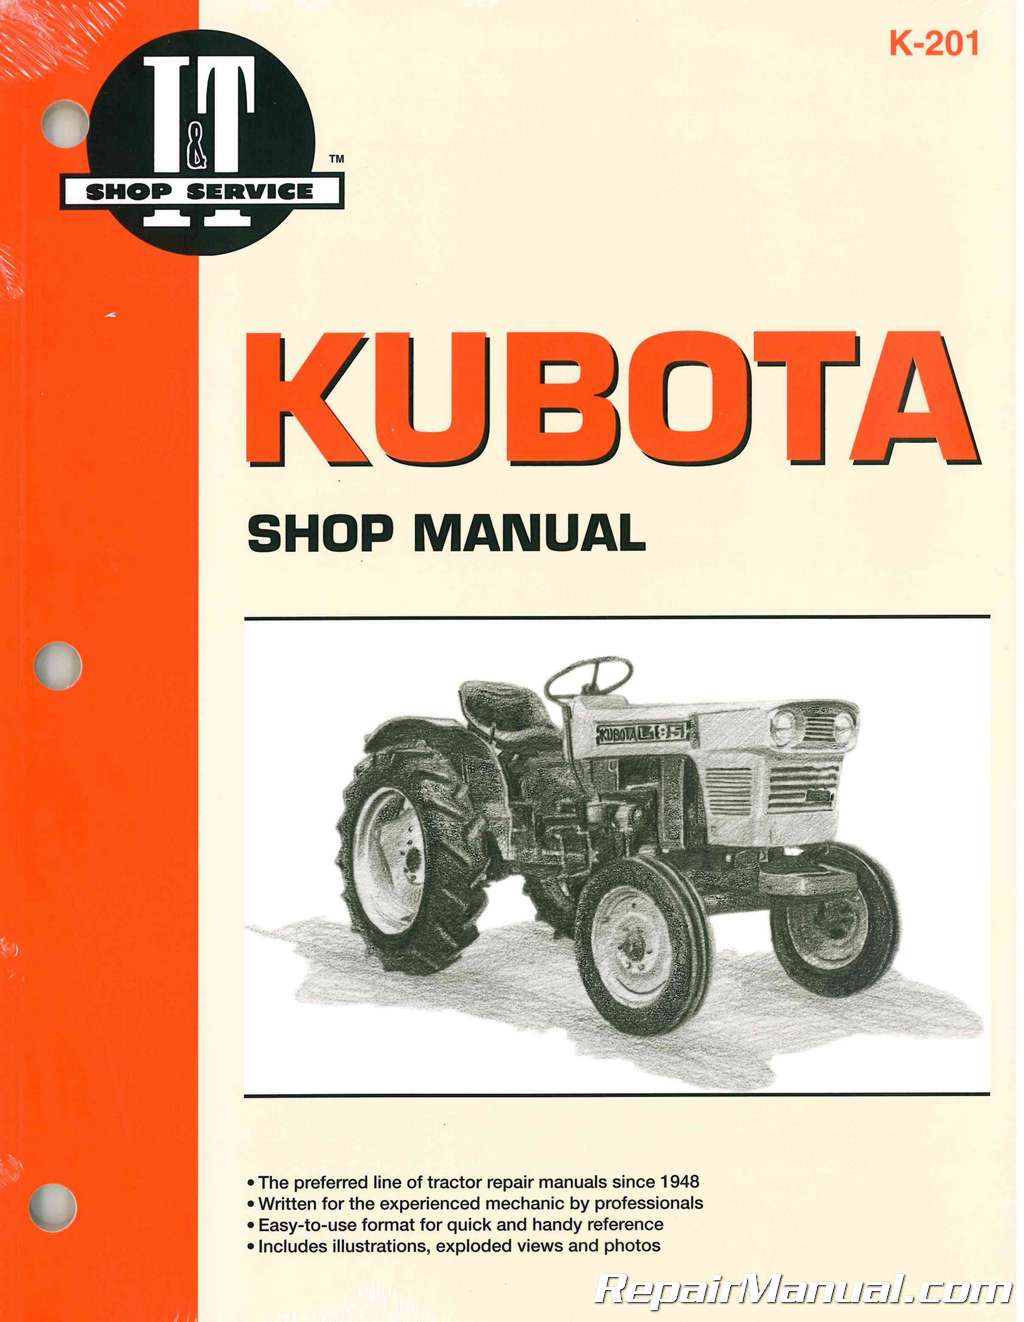 kubota tractor manual l175 l210 l225 l225dt l260 b5100d b5100e rh repairmanual com kubota tractors manuals free download kubota tractors manual b7100hst-d